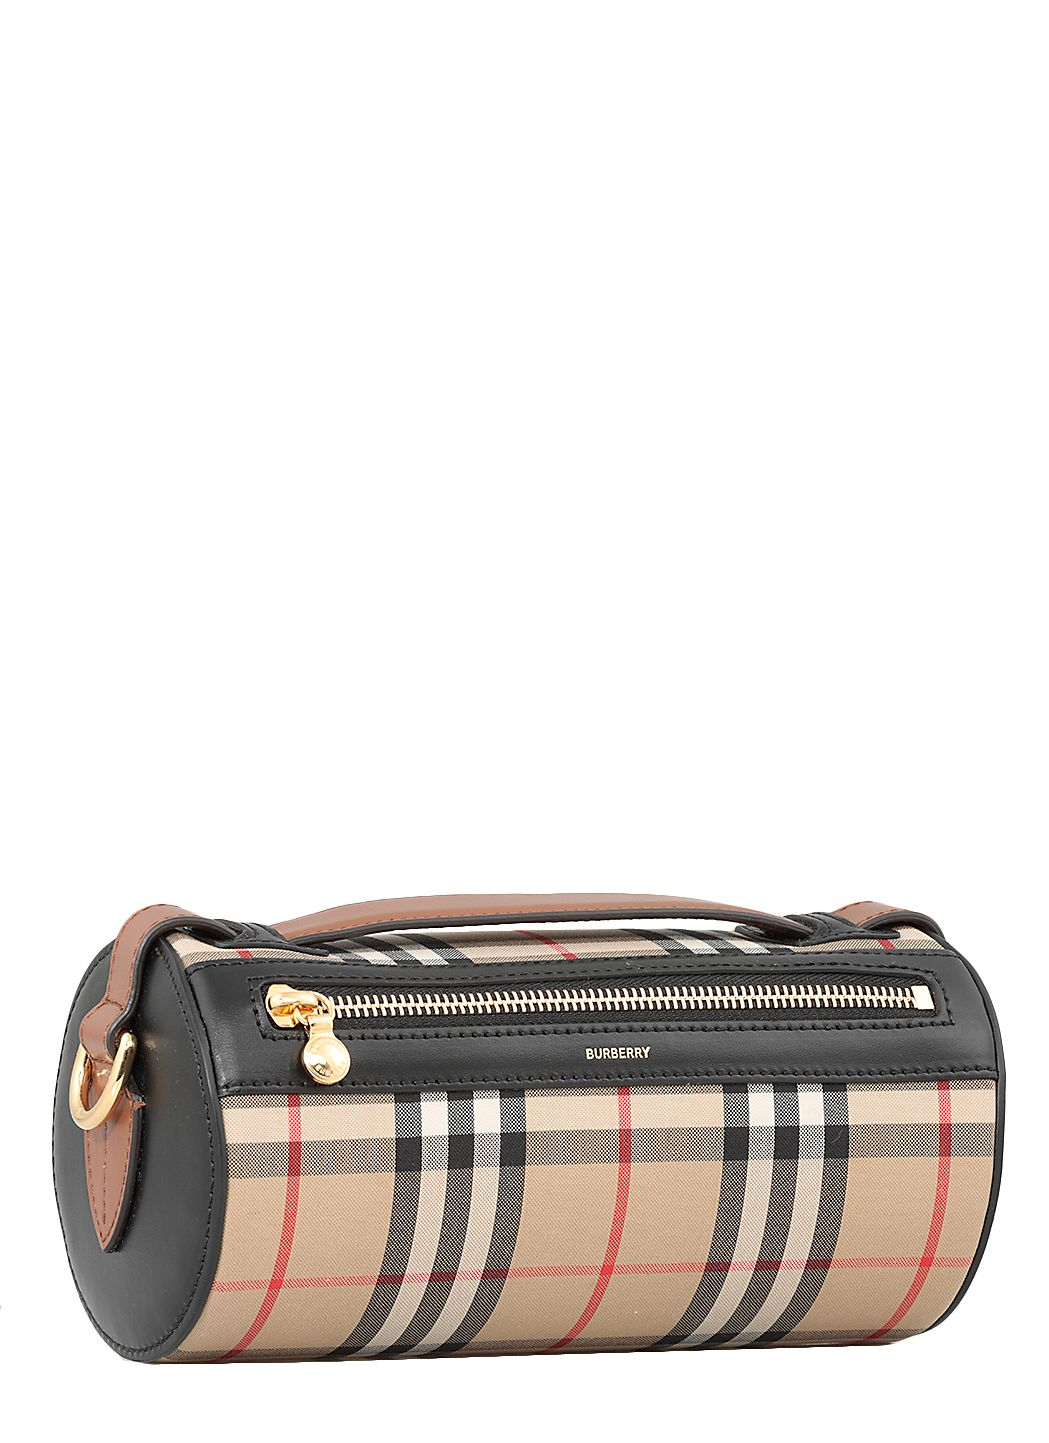 Cylindrical bag with check